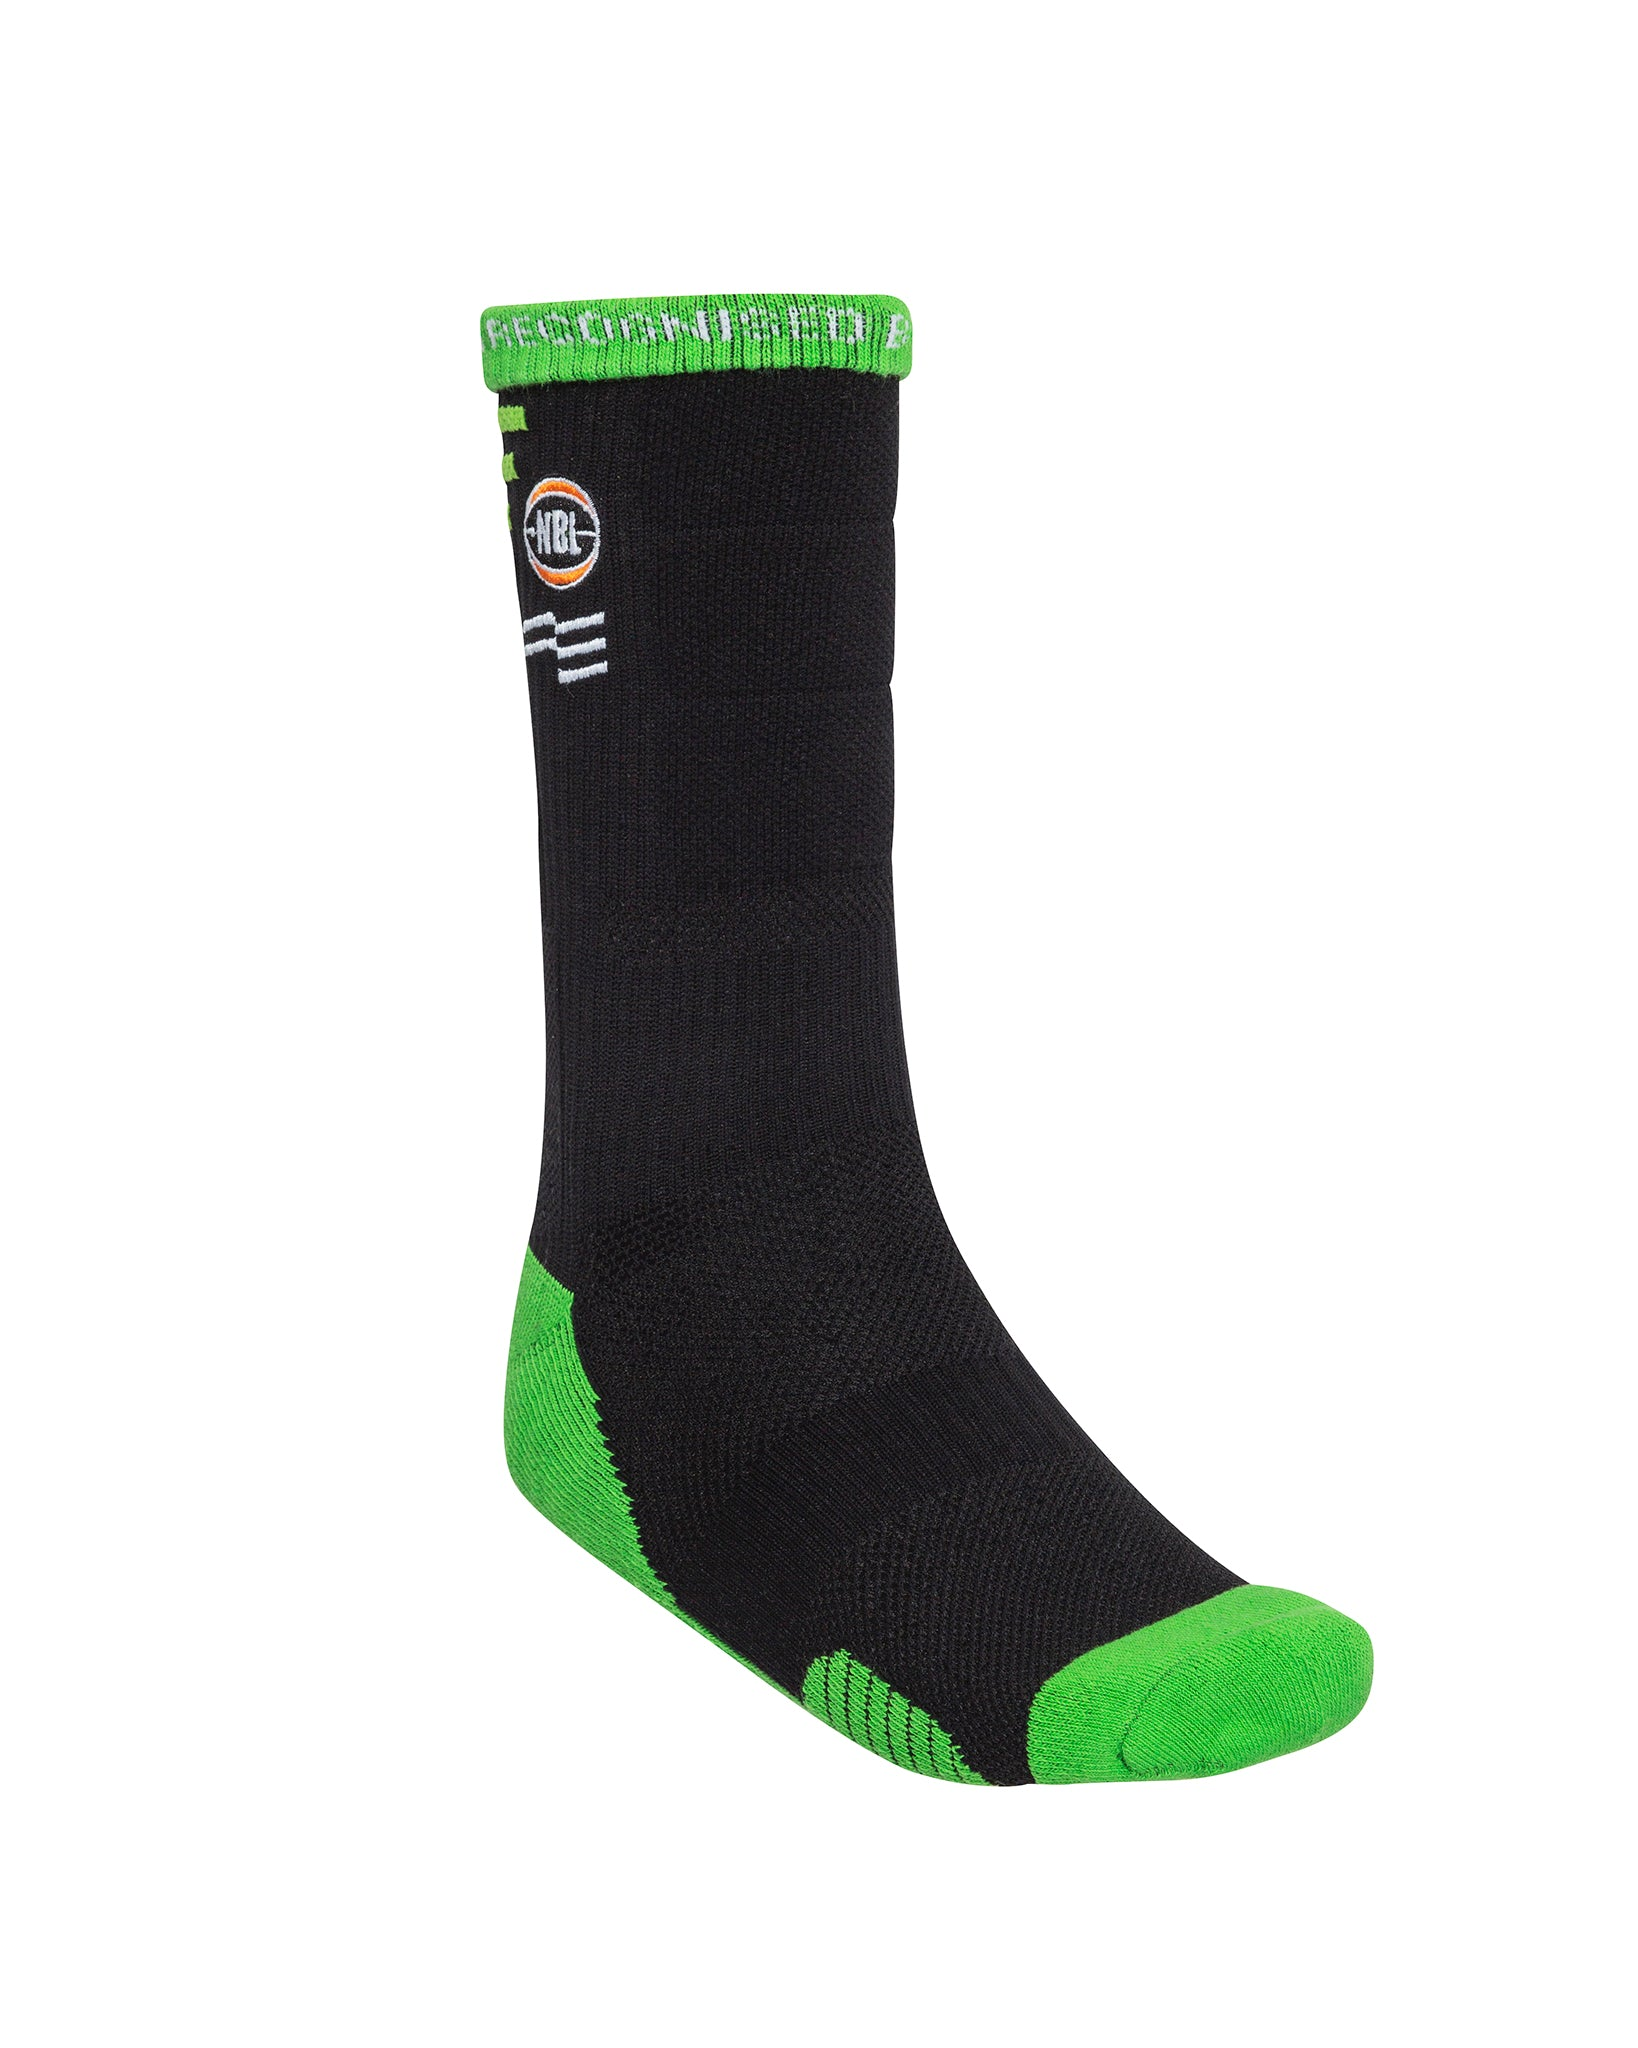 S.E. Melbourne Phoenix 19/20 Official NBL Home Socks